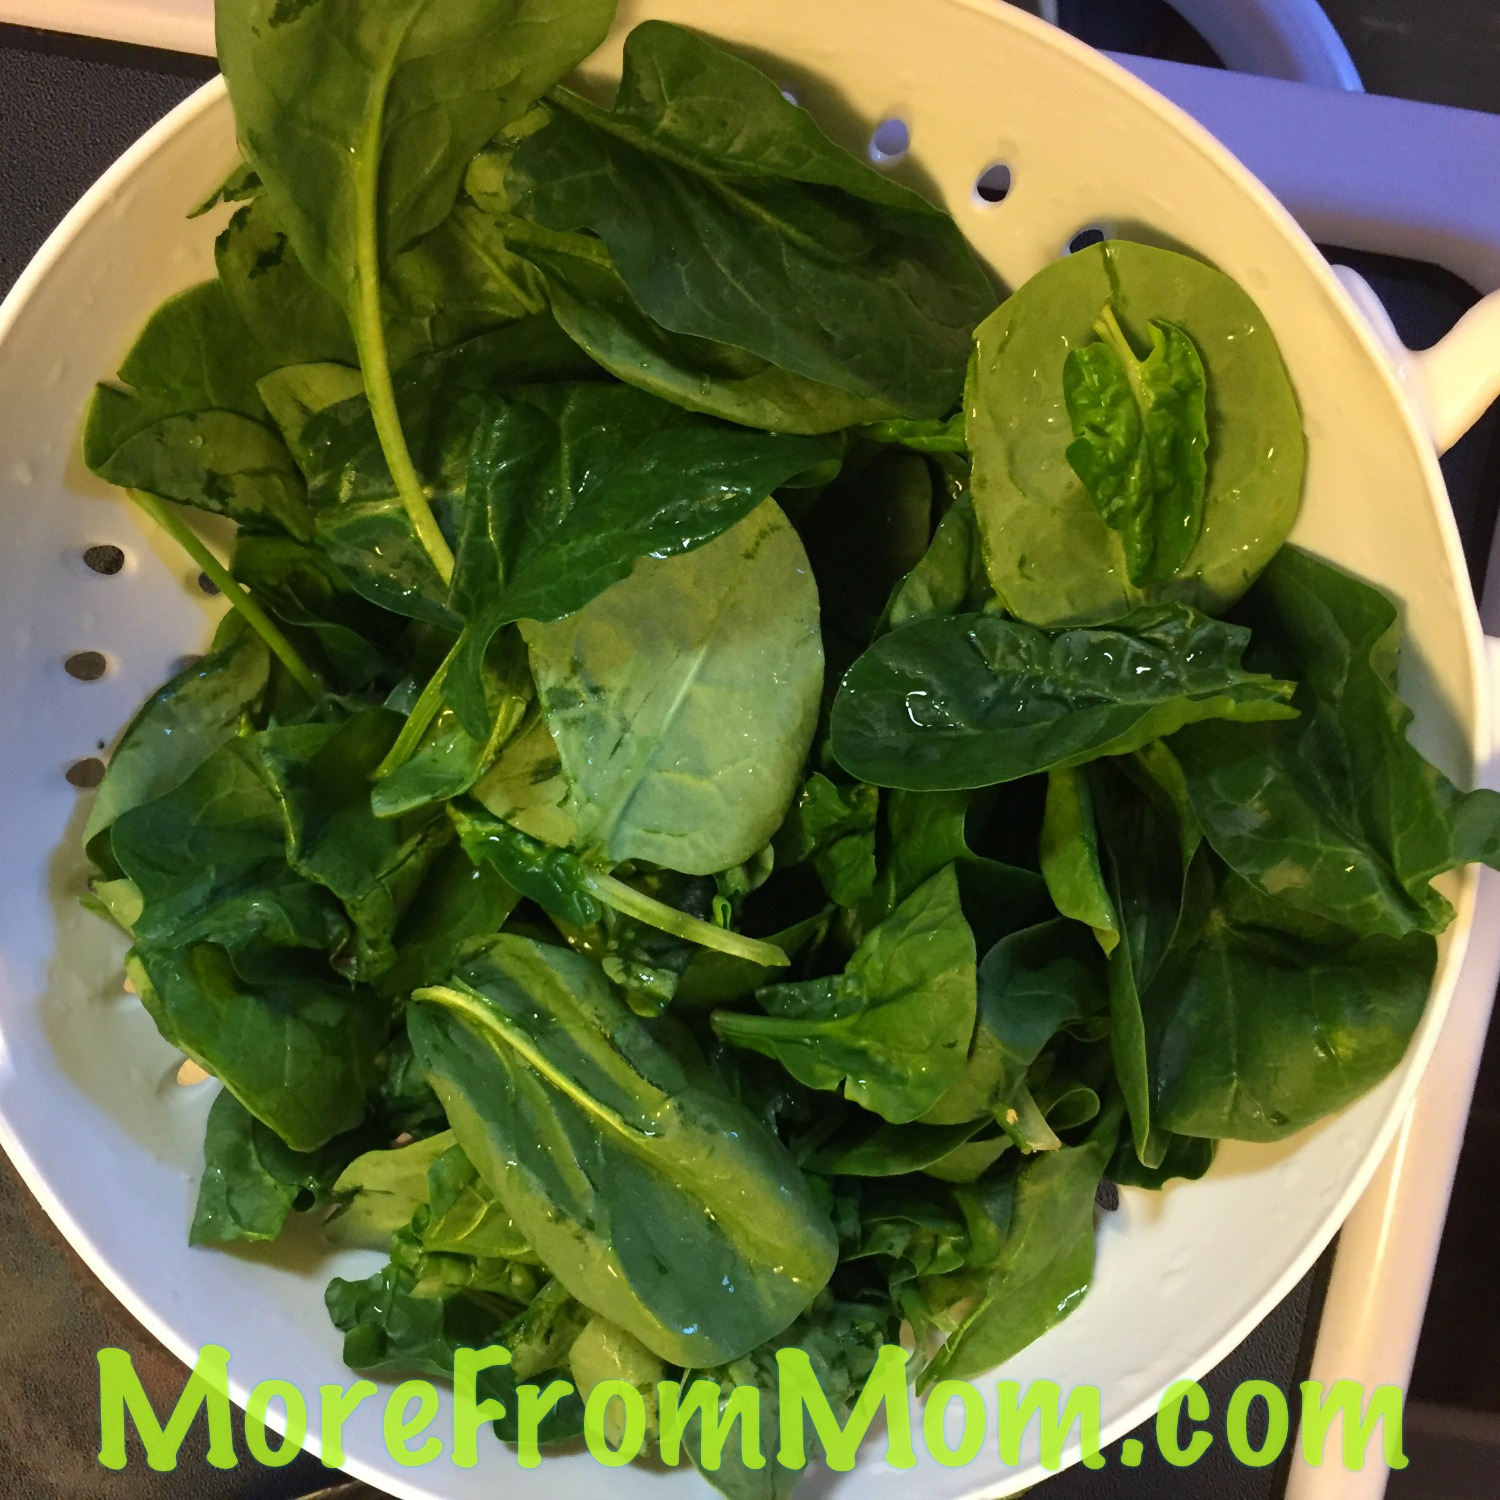 Wash and destem your fresh spinach